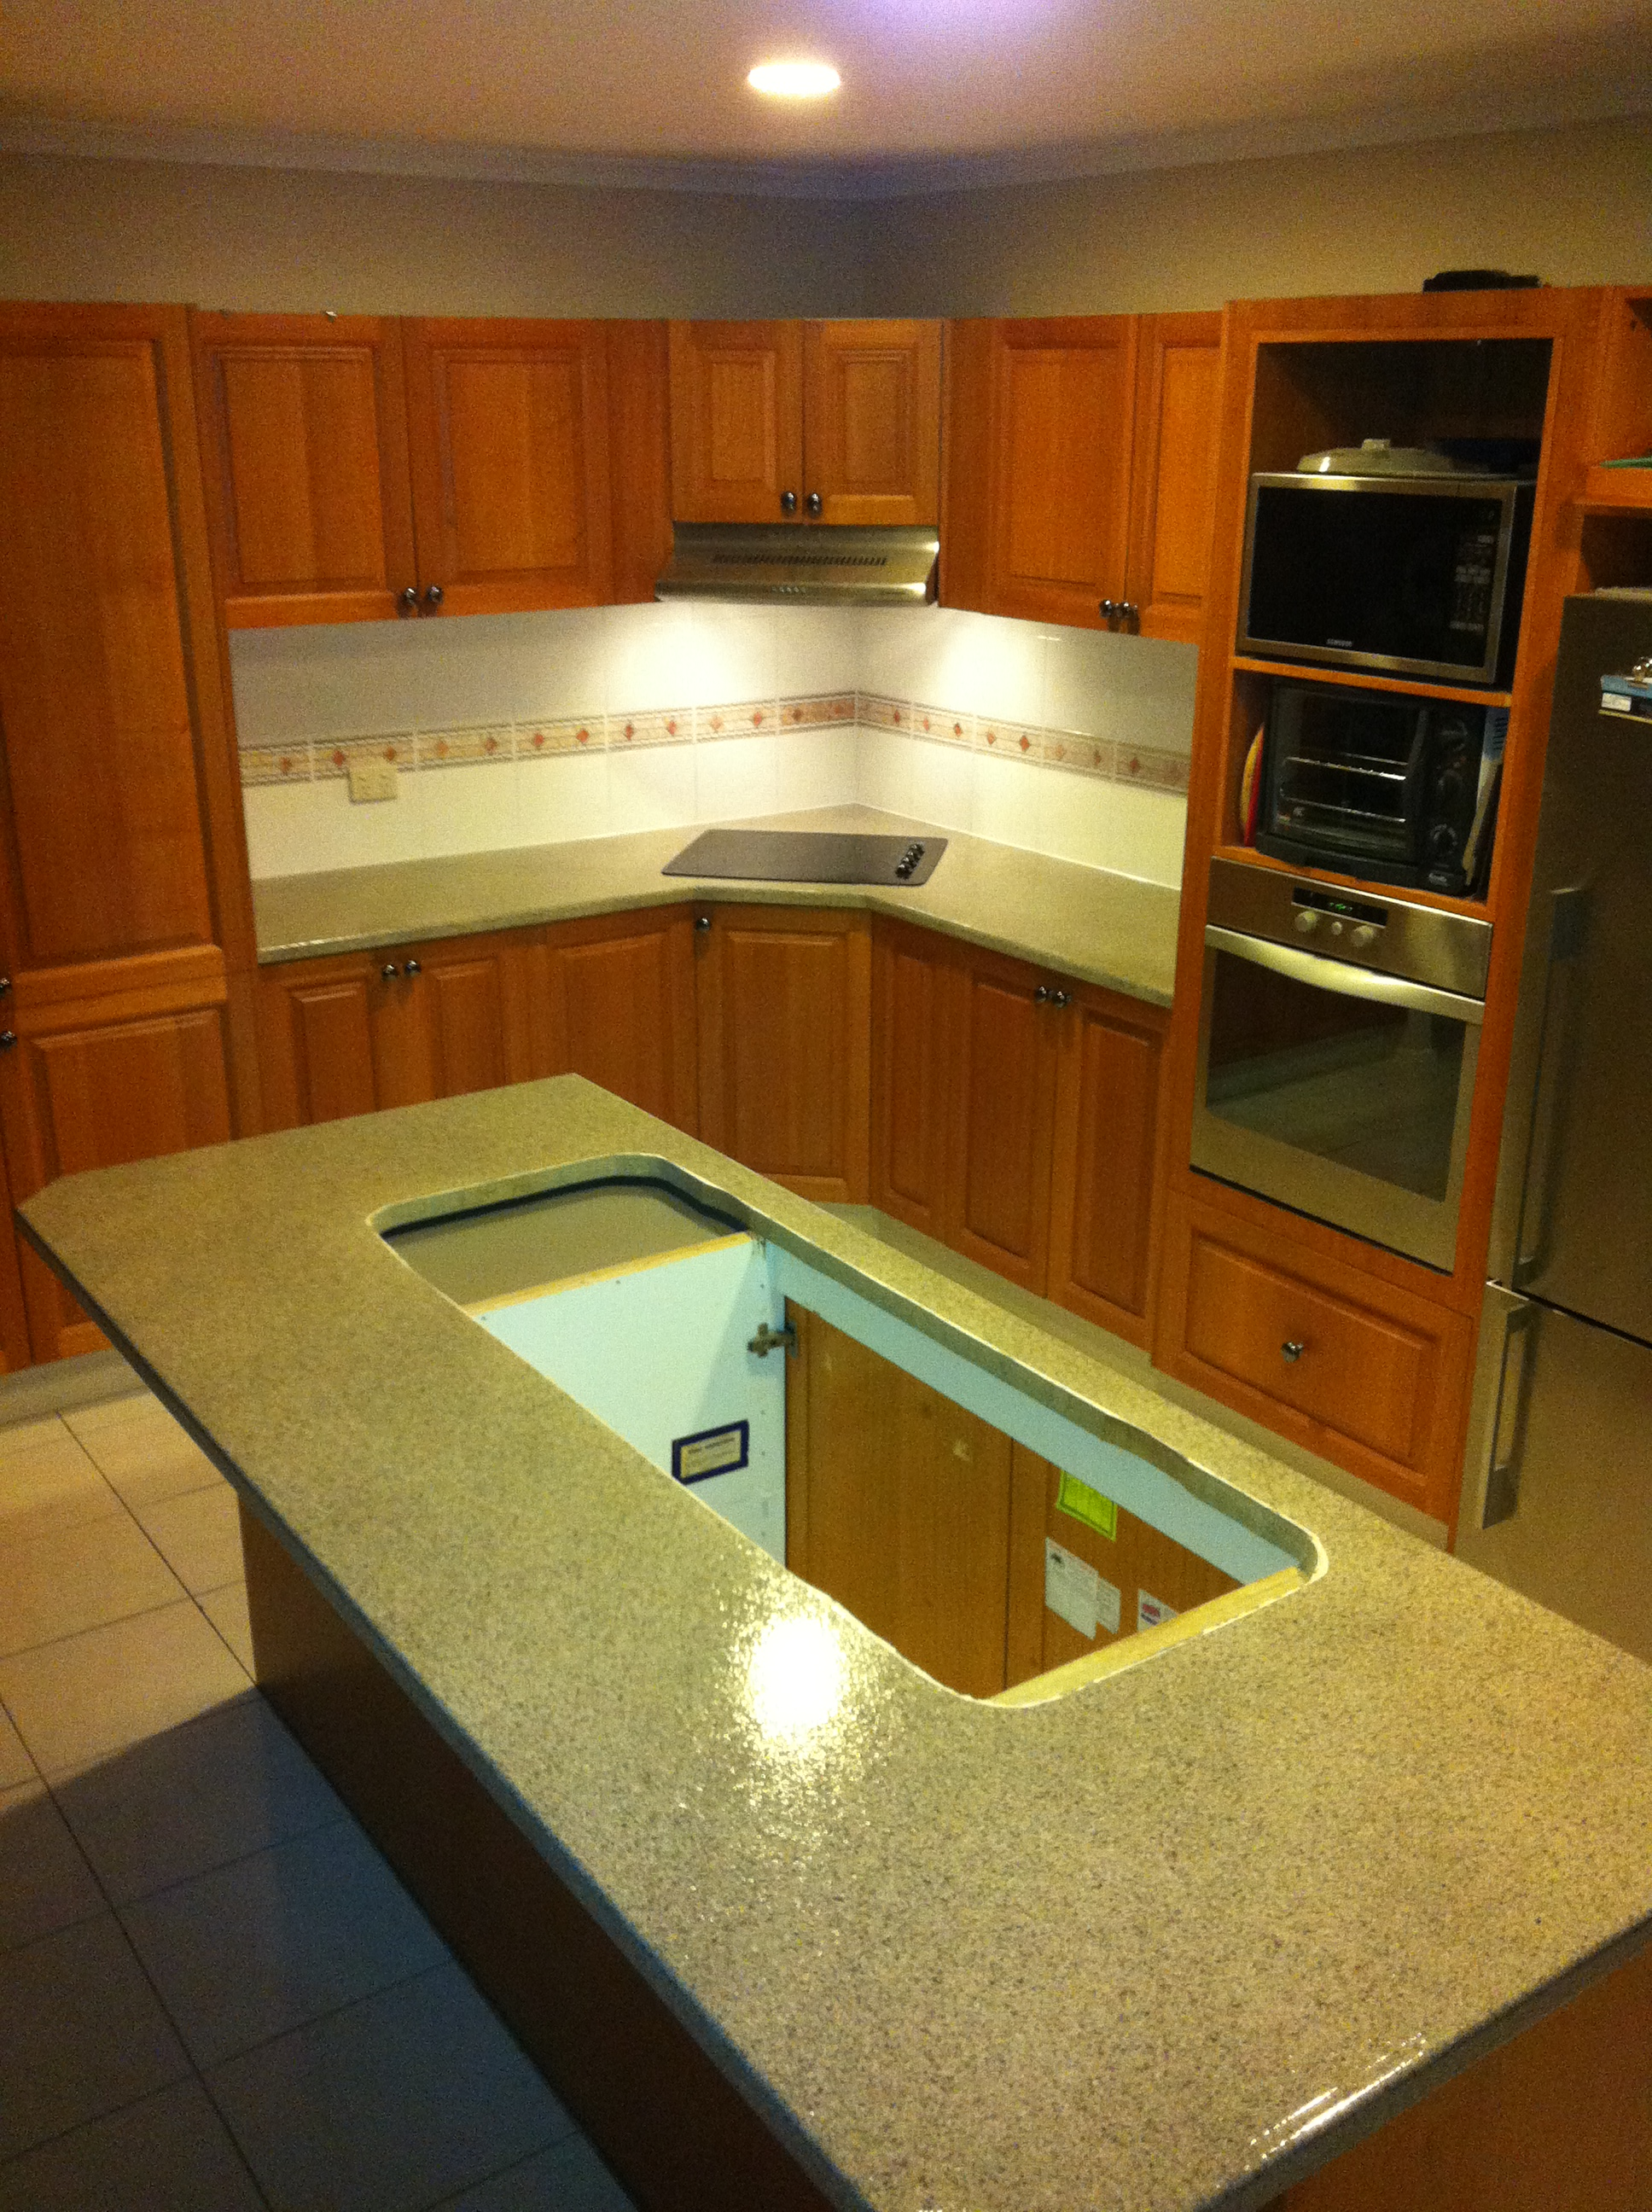 Shaped kitchen with island undergoing renovation (cut out in island